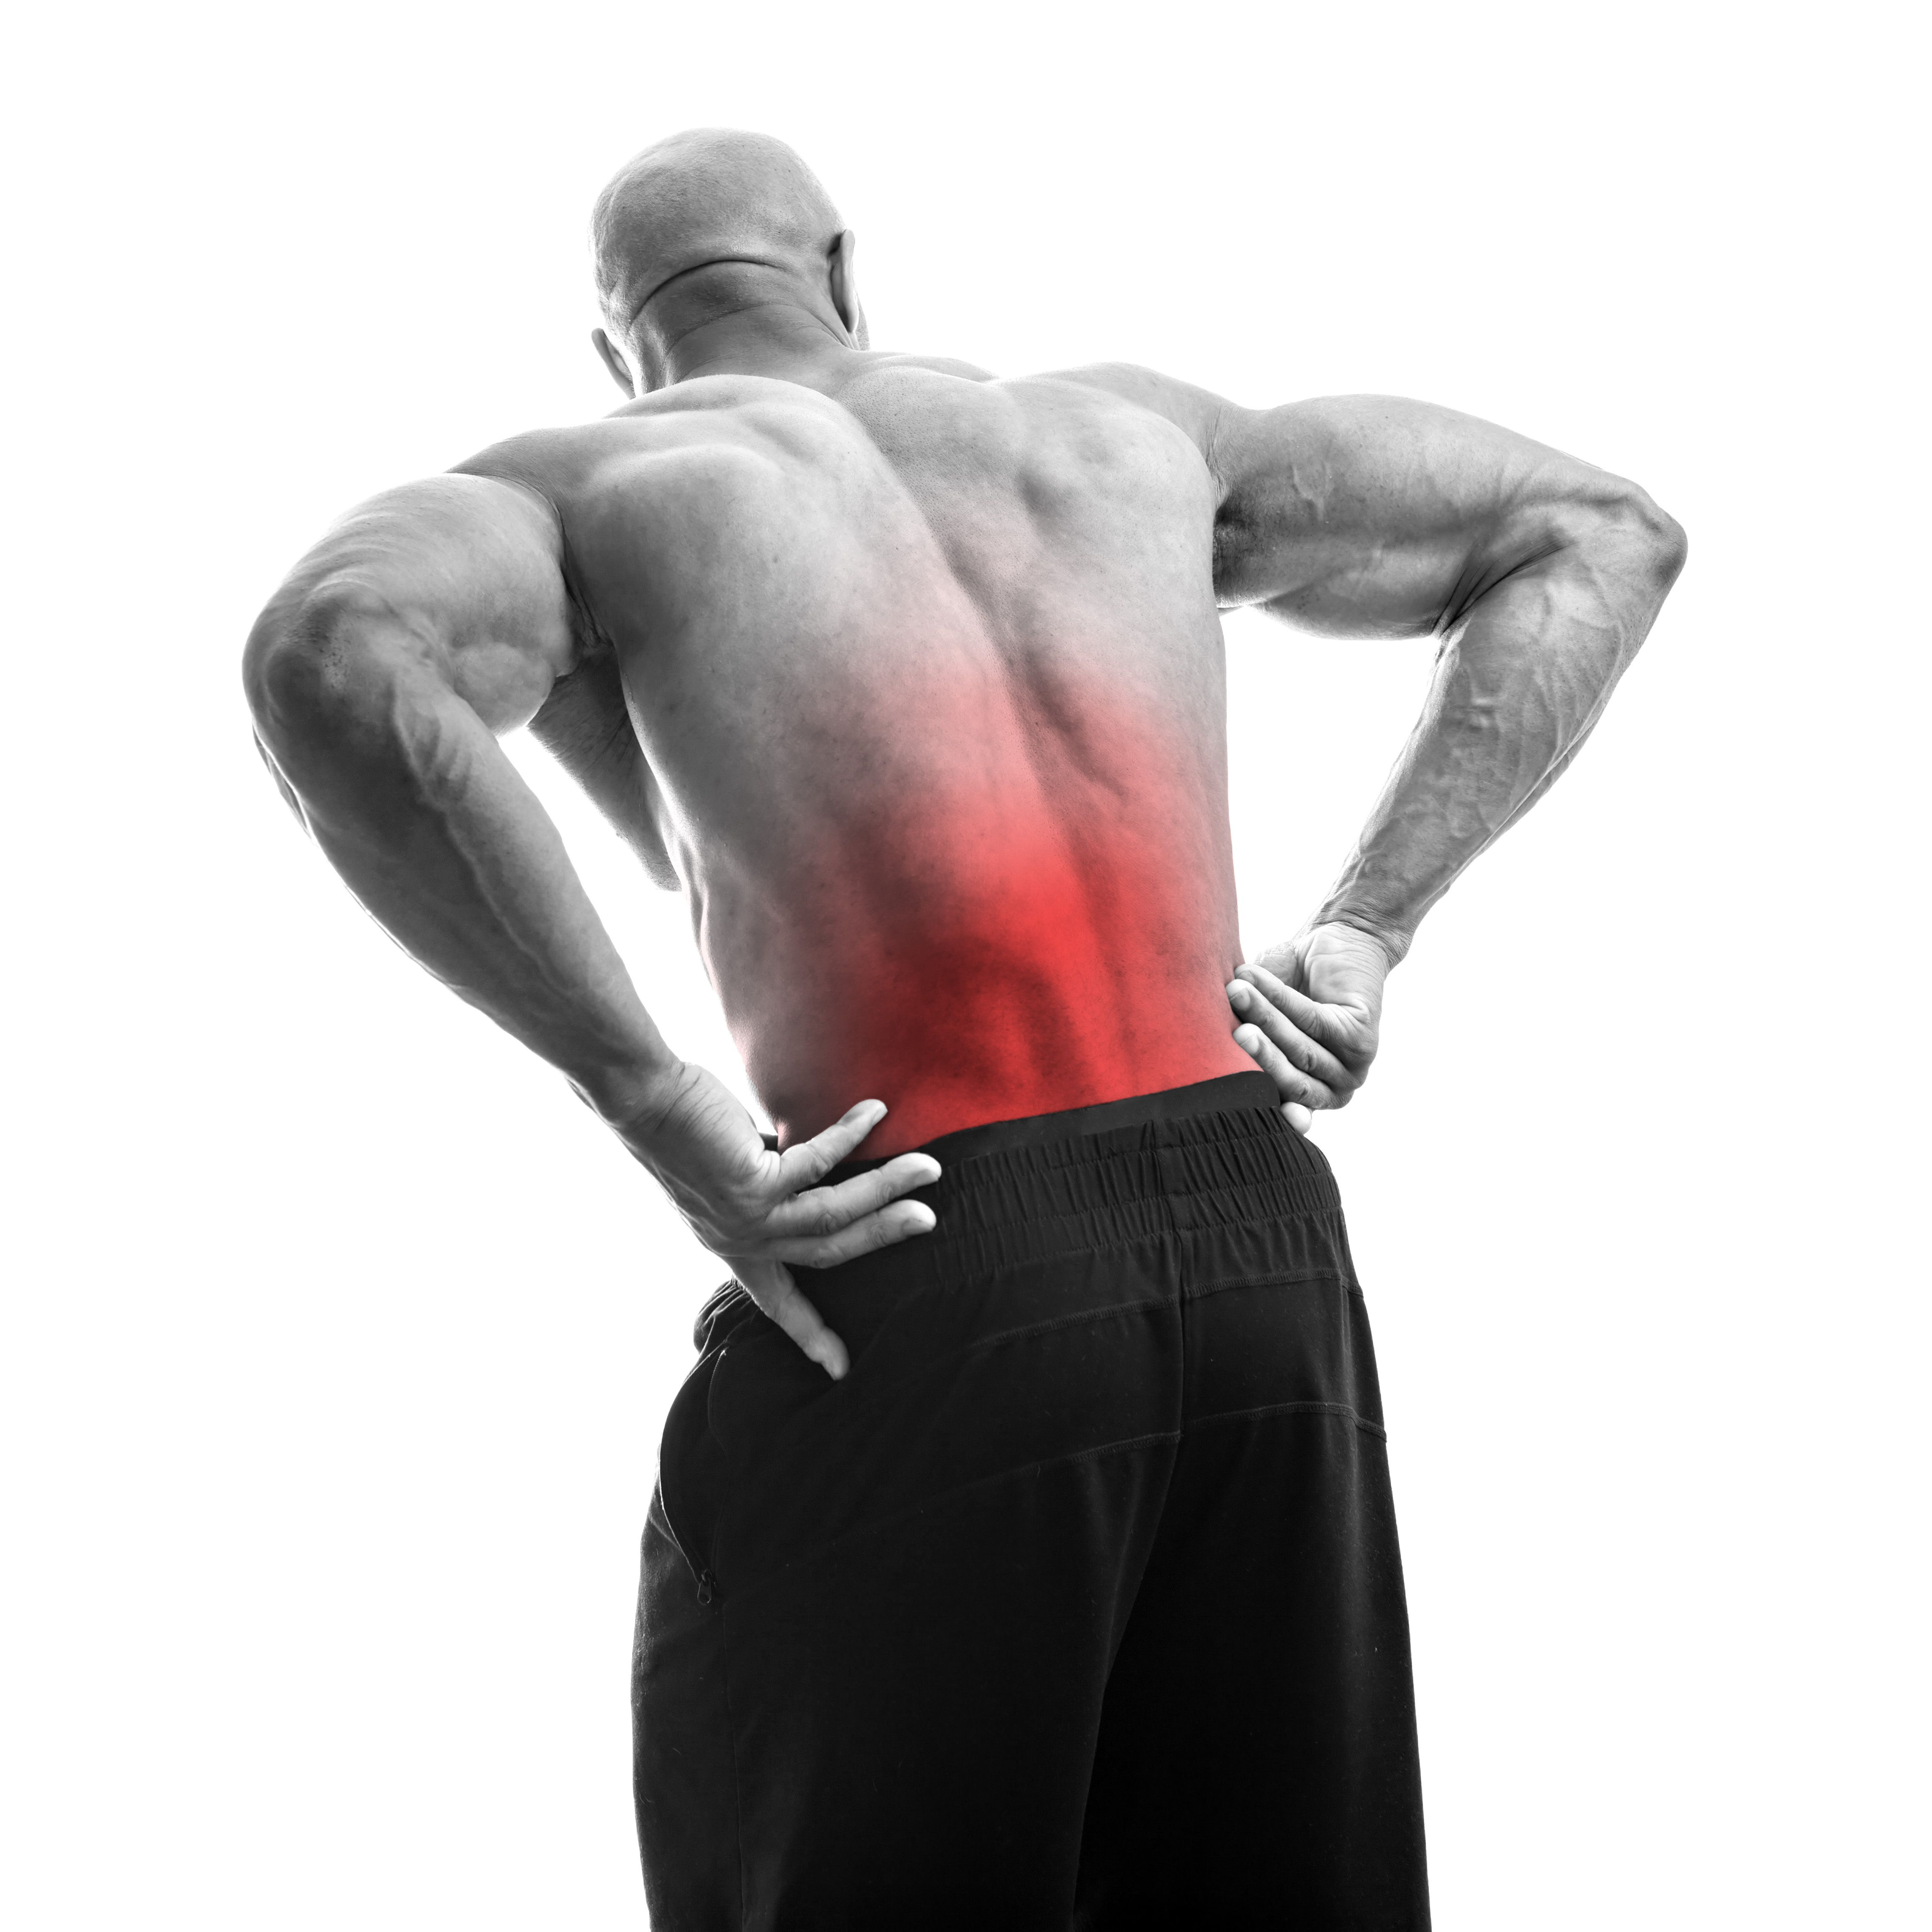 How I Healed My Low Back Pain Naturally: Part I